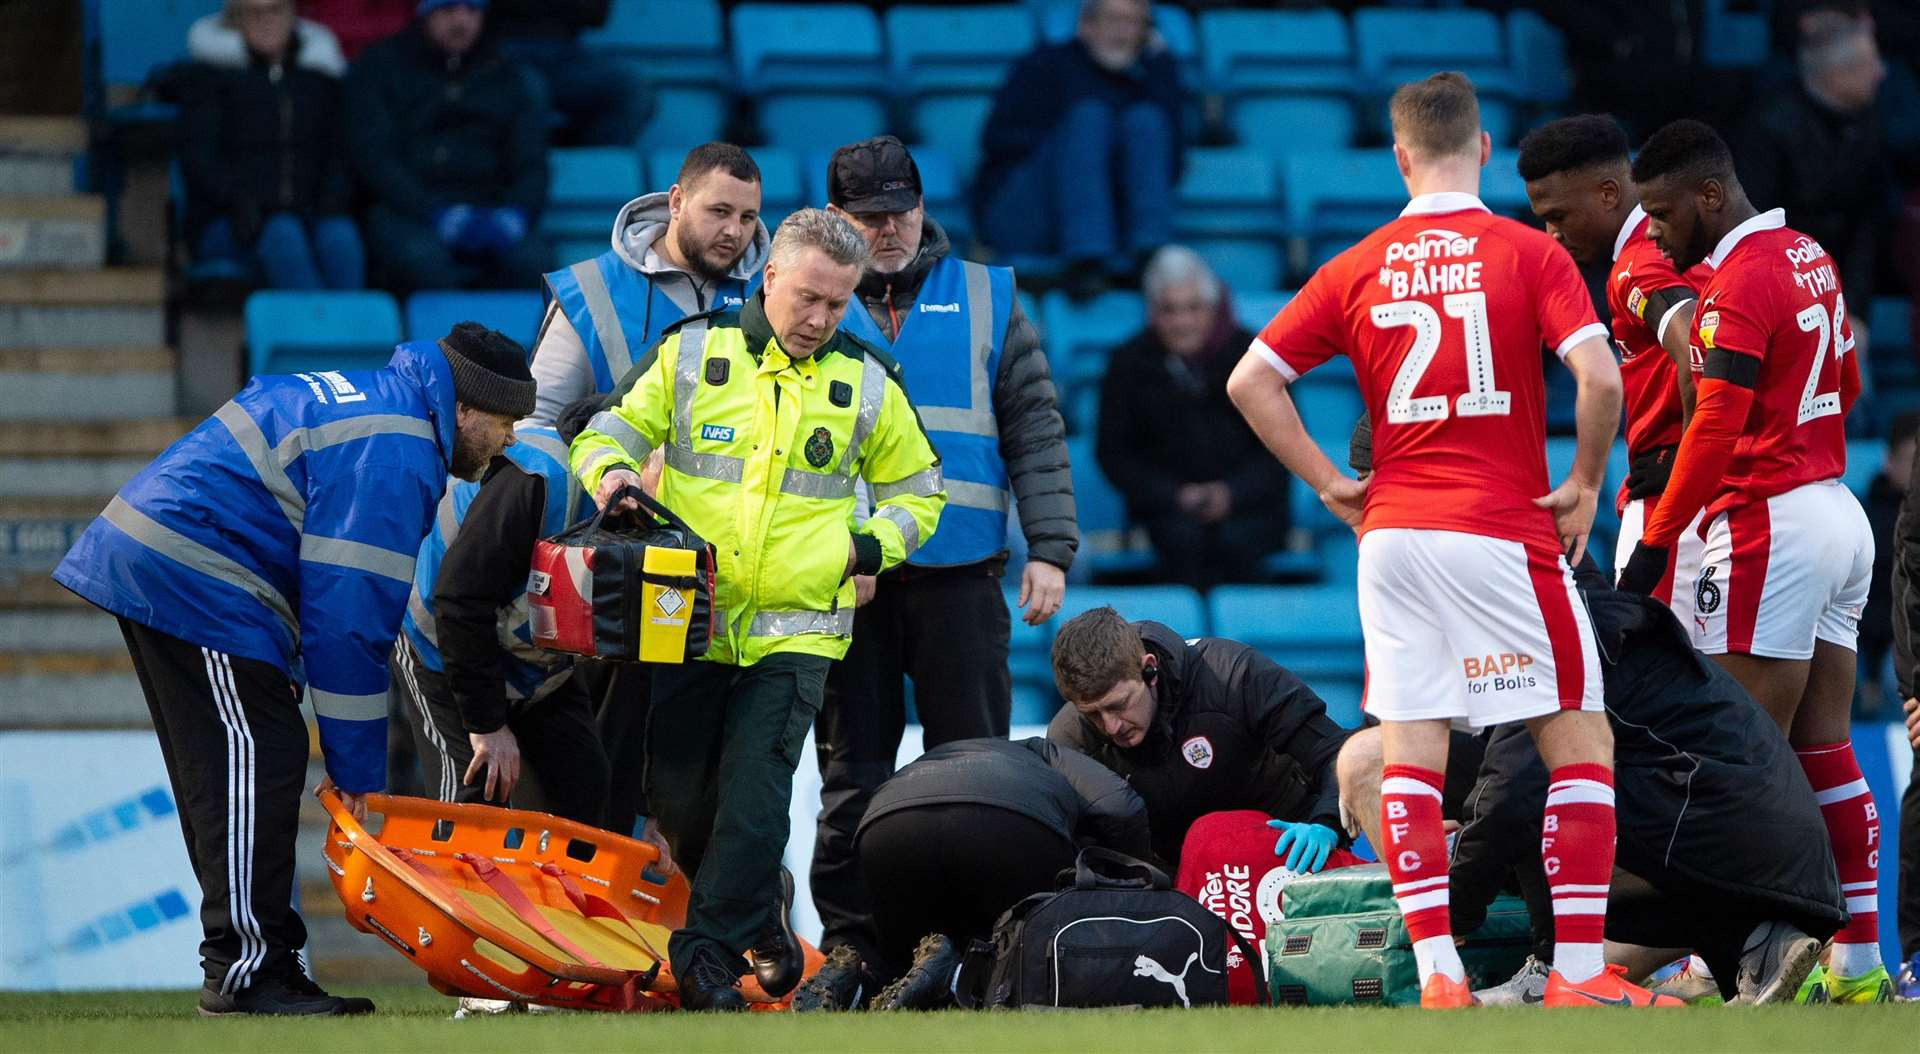 Concern for Tykes striker Kieffer Moore, who was taken to hospital after colliding with Gabriel Zakuani Picture: Ady Kerry